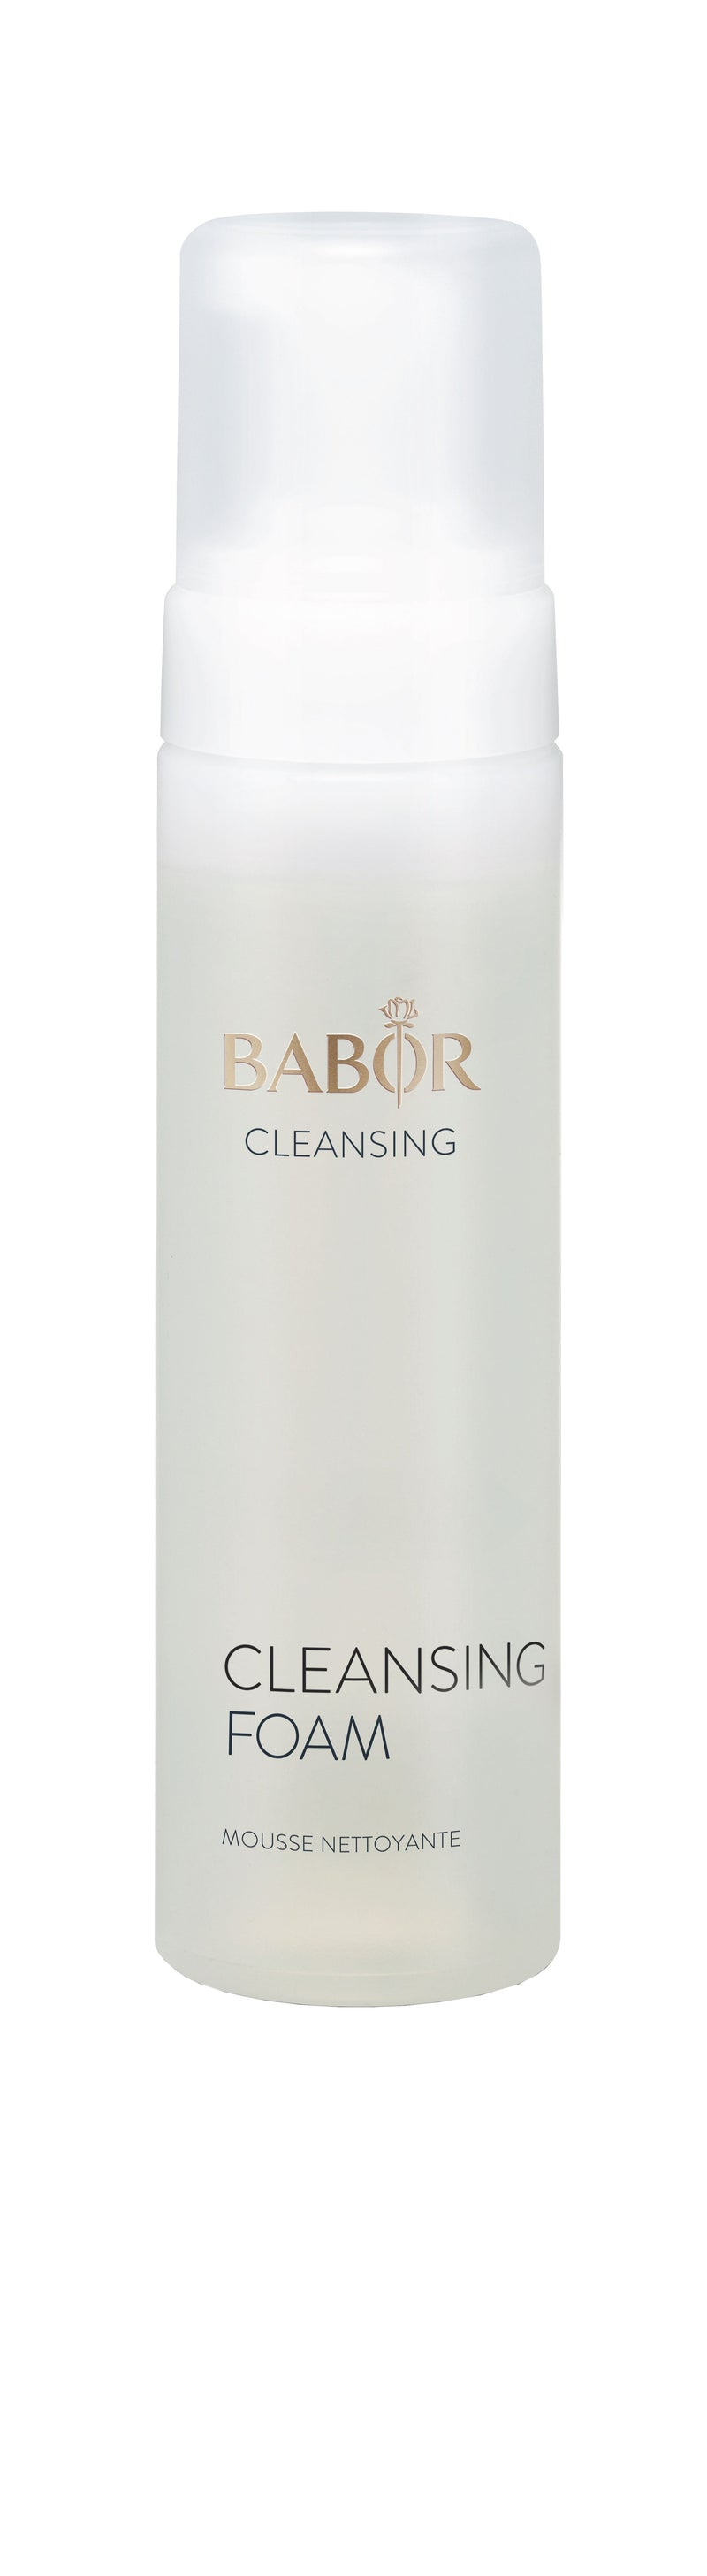 BABOR CLEANSING FOAM Cleanser Babor